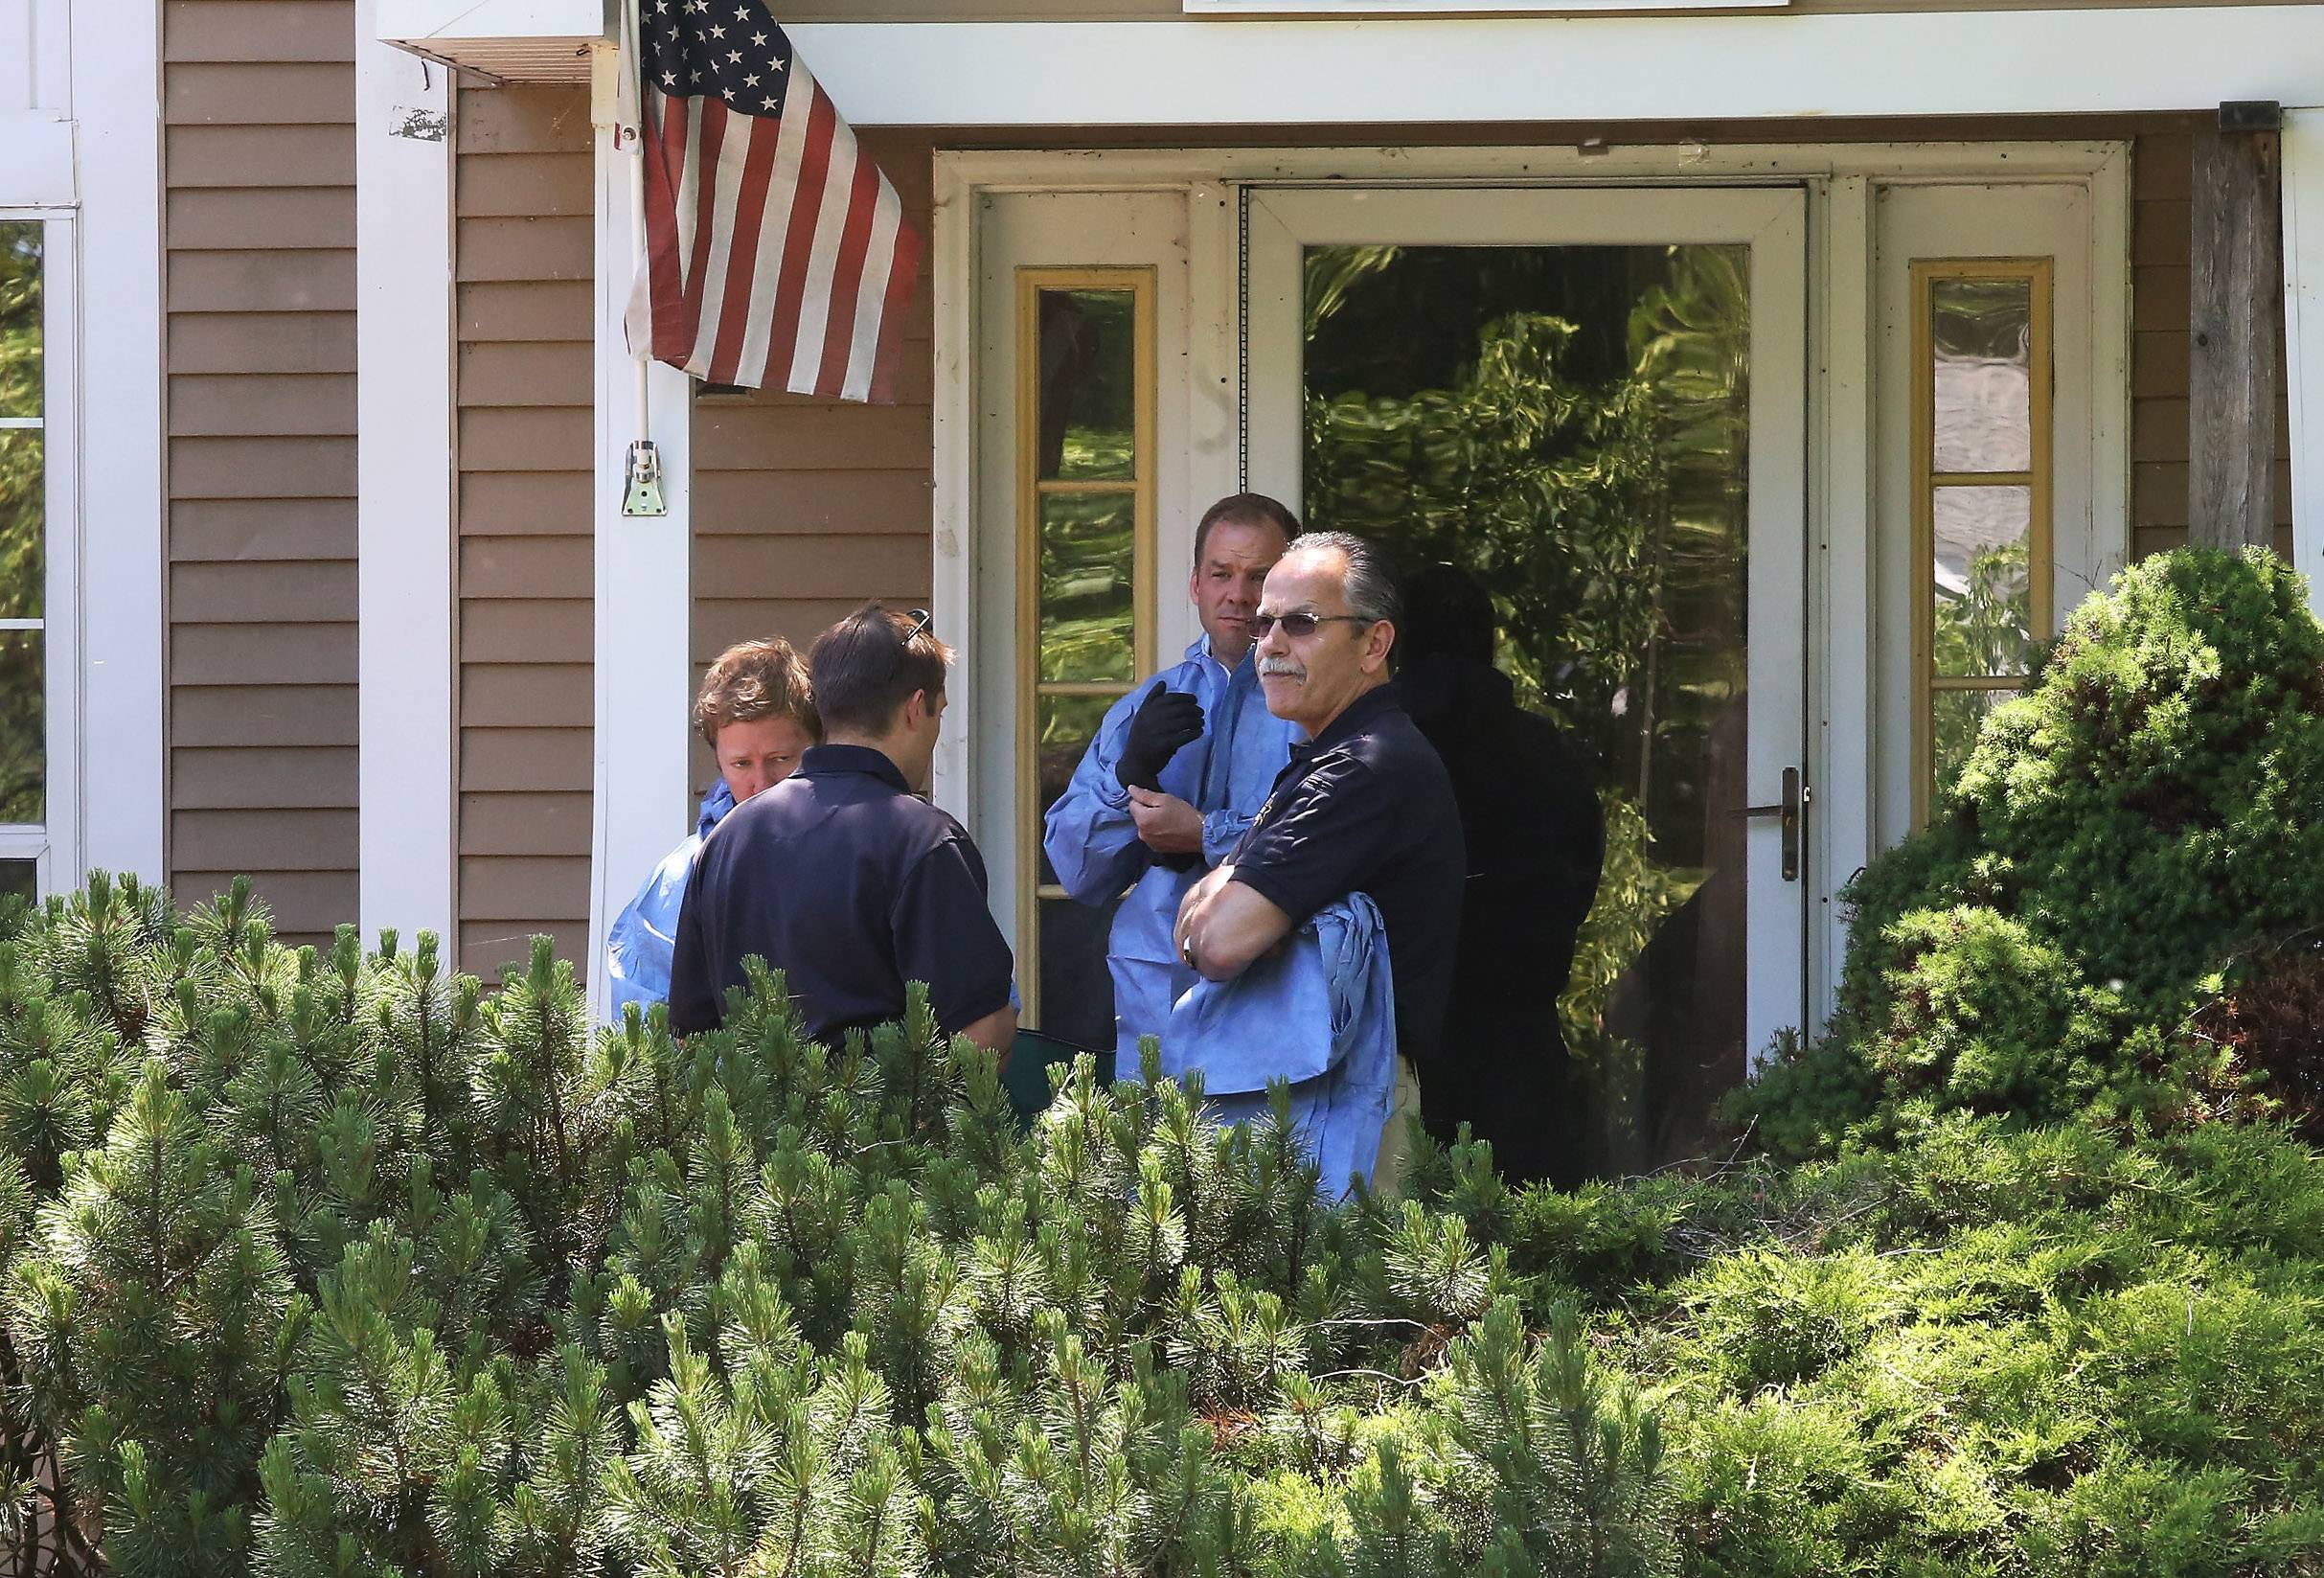 Island Lake woman's death was a homicide, coroner says